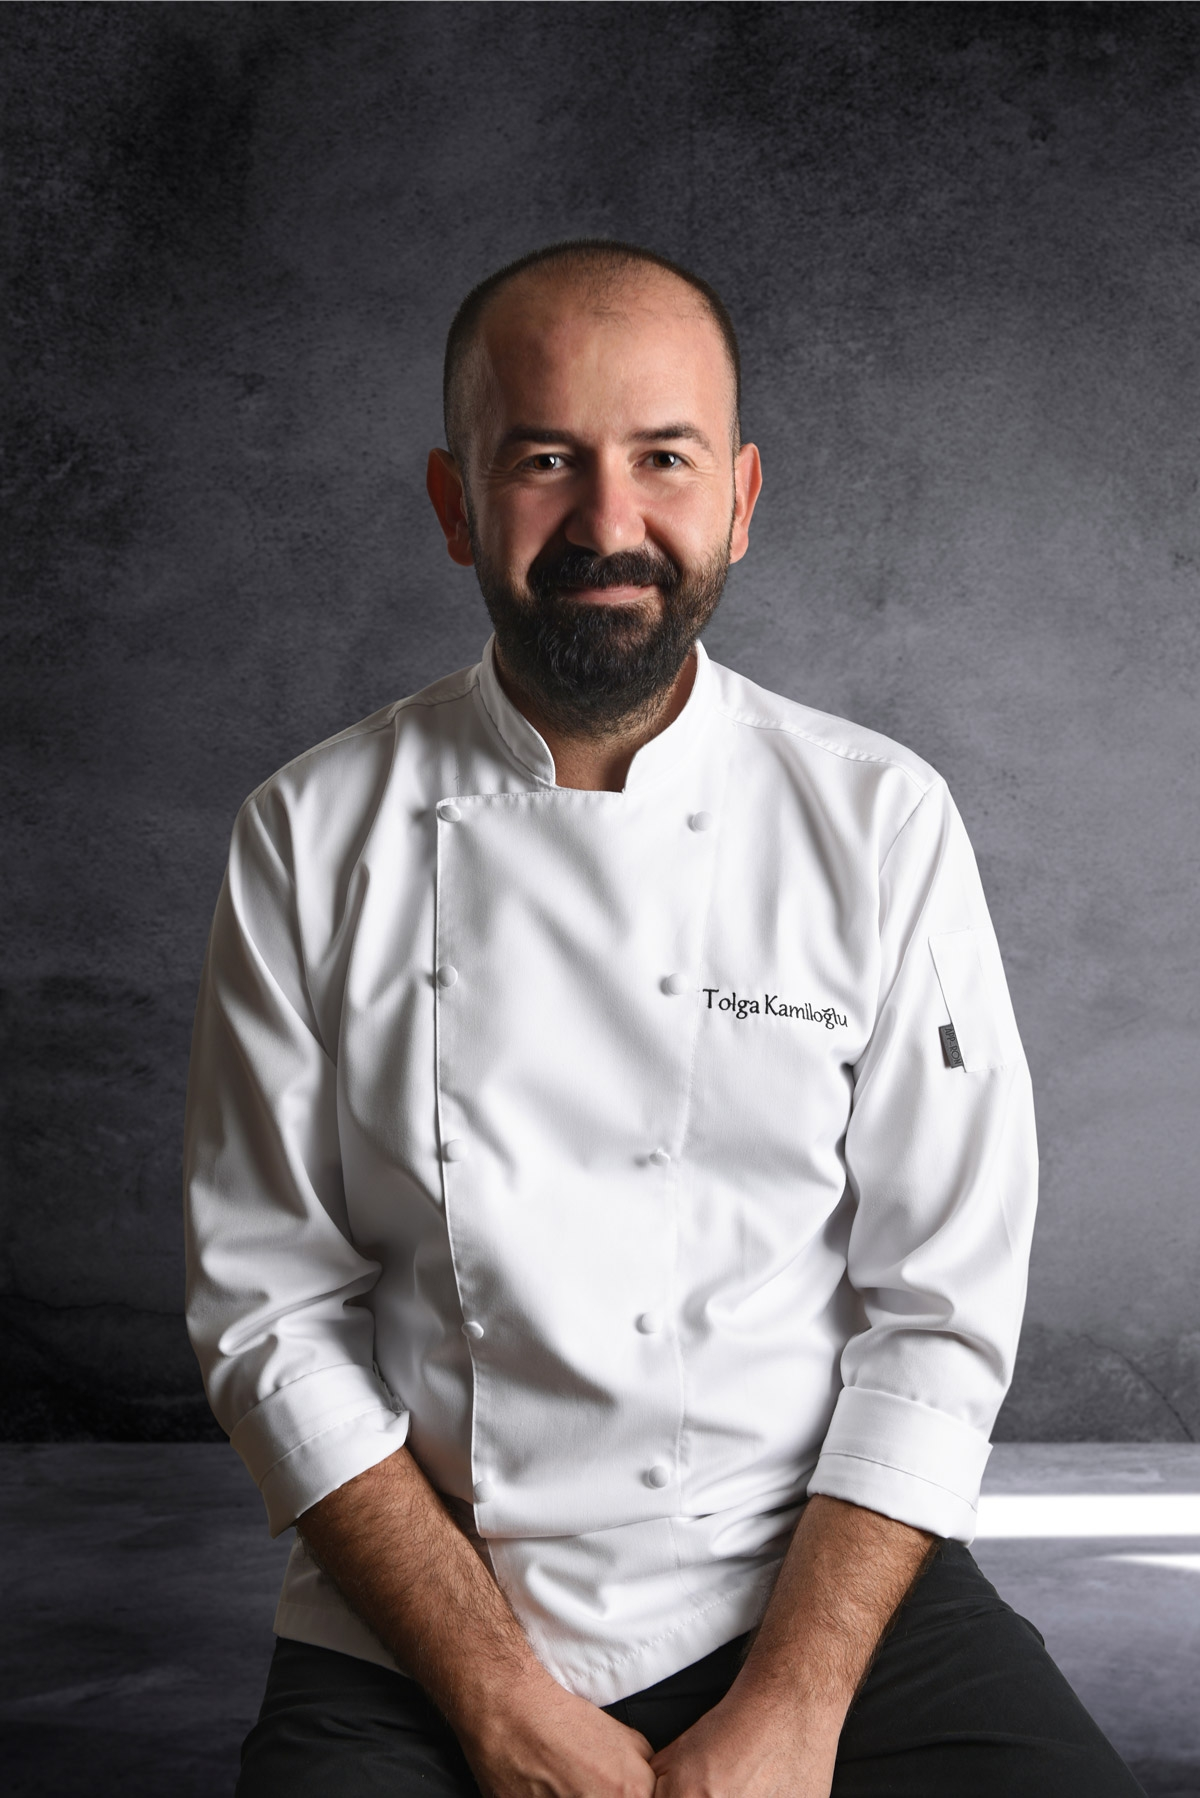 Chef Kamiloğlu gives tips about food preservation for winter